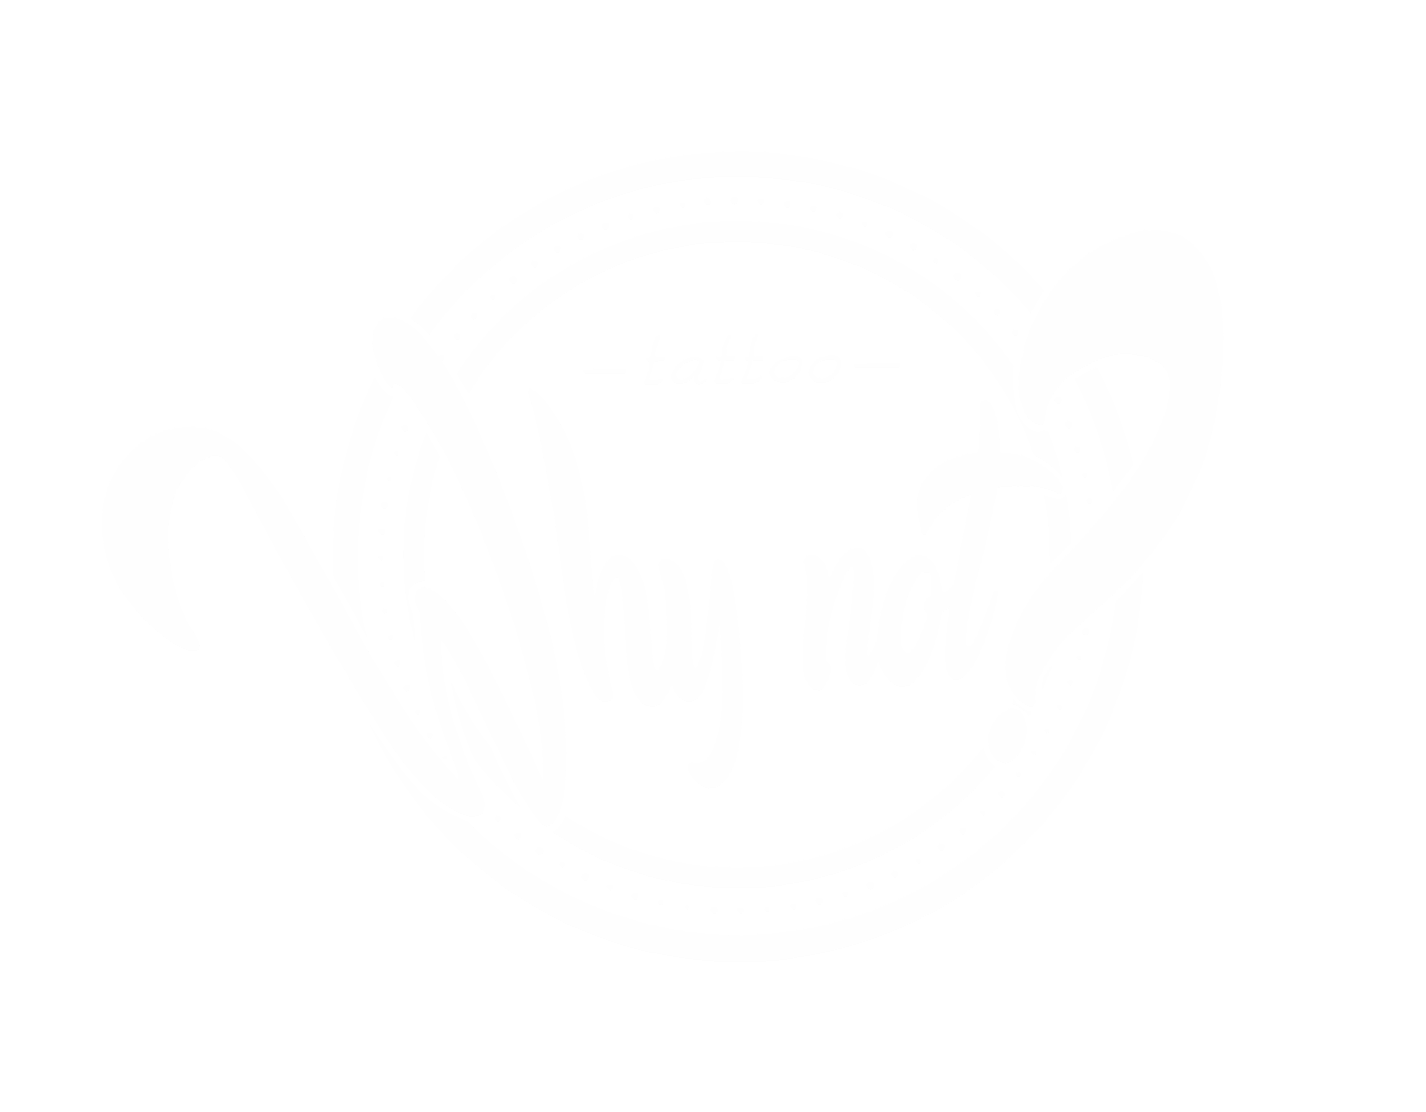 WHY NOT? TATTOO